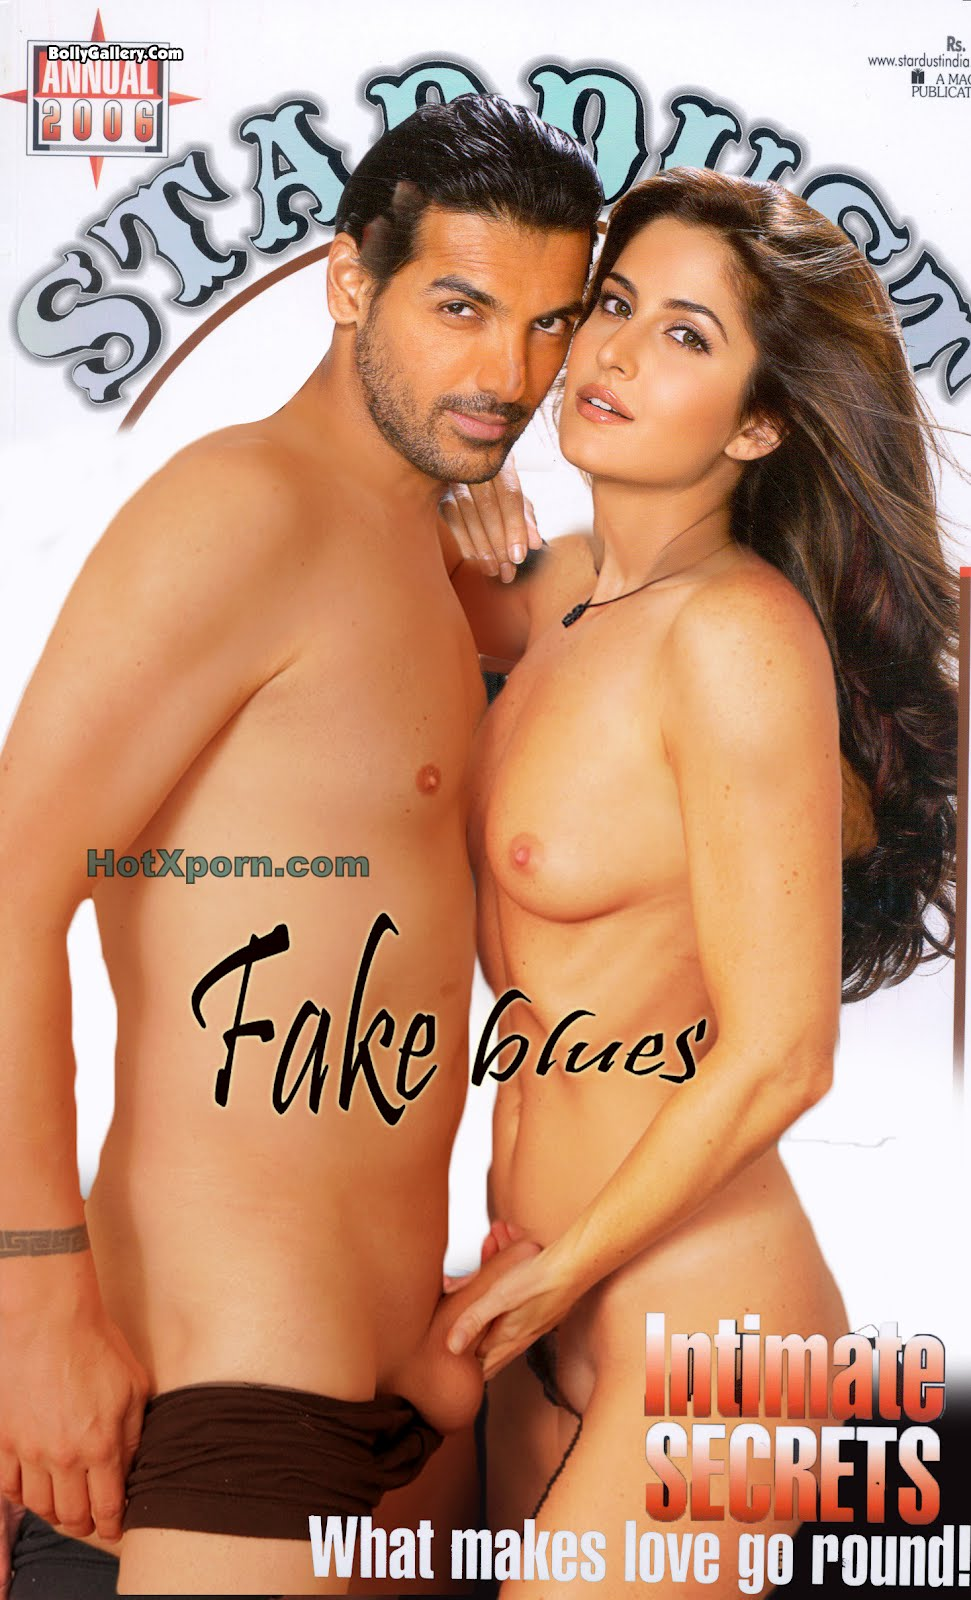 Hot Bollywood Actress Katrina Kaif Ready To Fucked By John Abraham Nude Photoshoot Fake